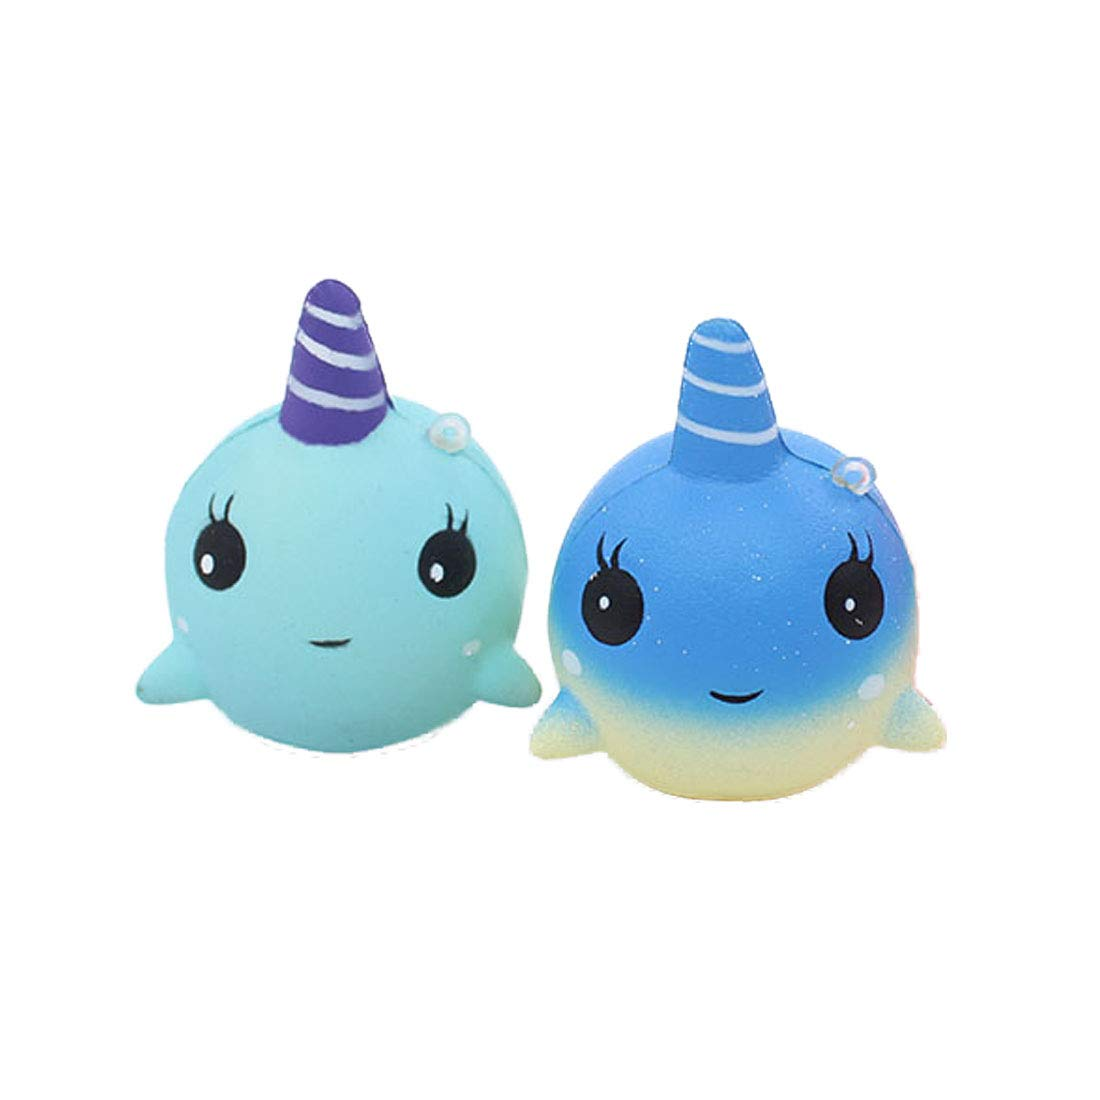 ModFL Squishies Unicorn Jumbo Squishy Slow Rising Squeeze Toys Kawaii Scented Toys Stress Relief Toys Decorative Props Pack of 2